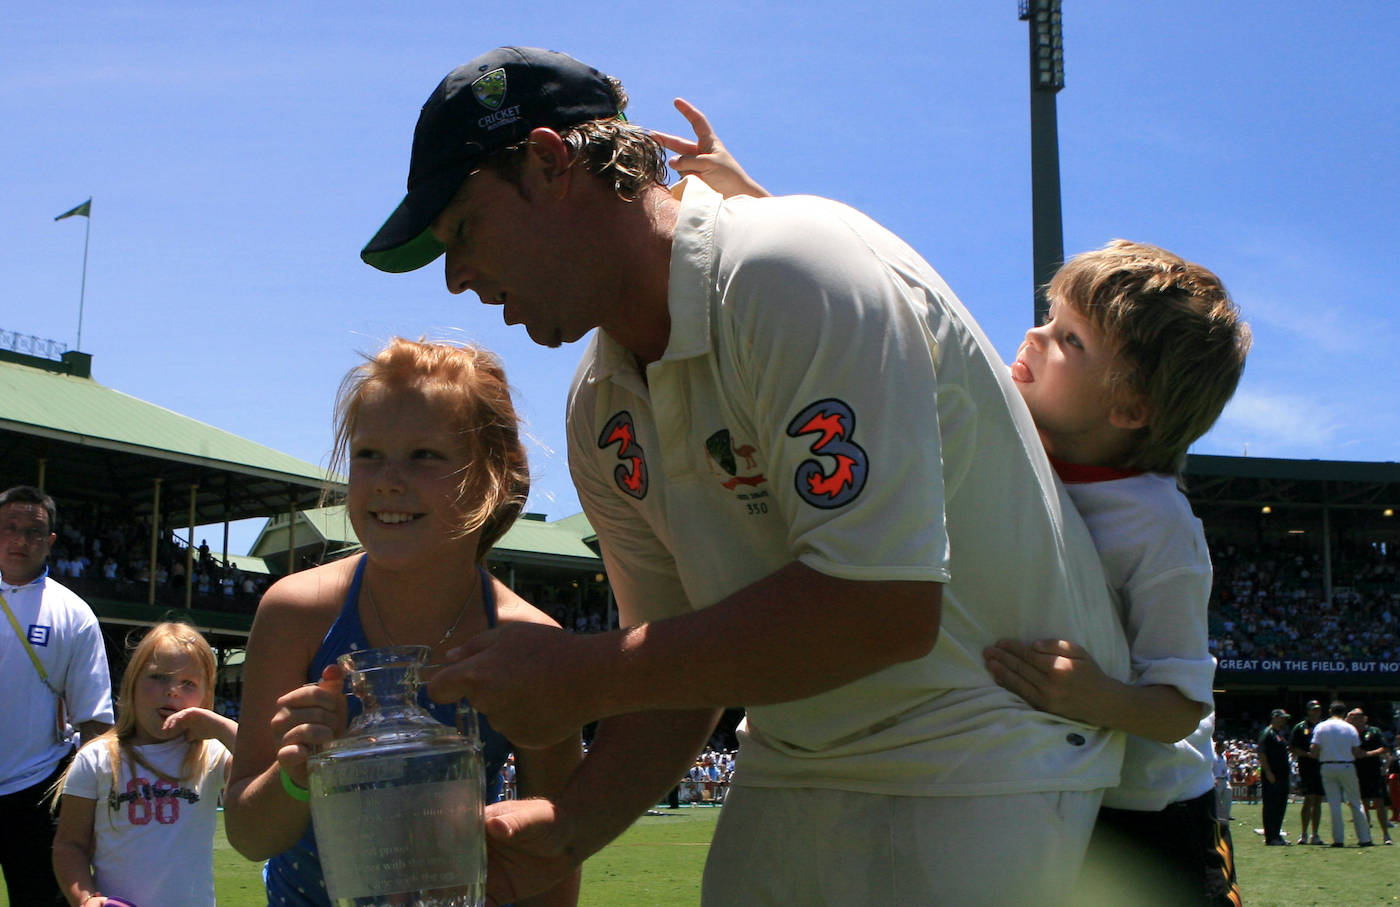 Jackson (right) knows just what Shane Warne's last Ashes photo-op needs - bunny ears